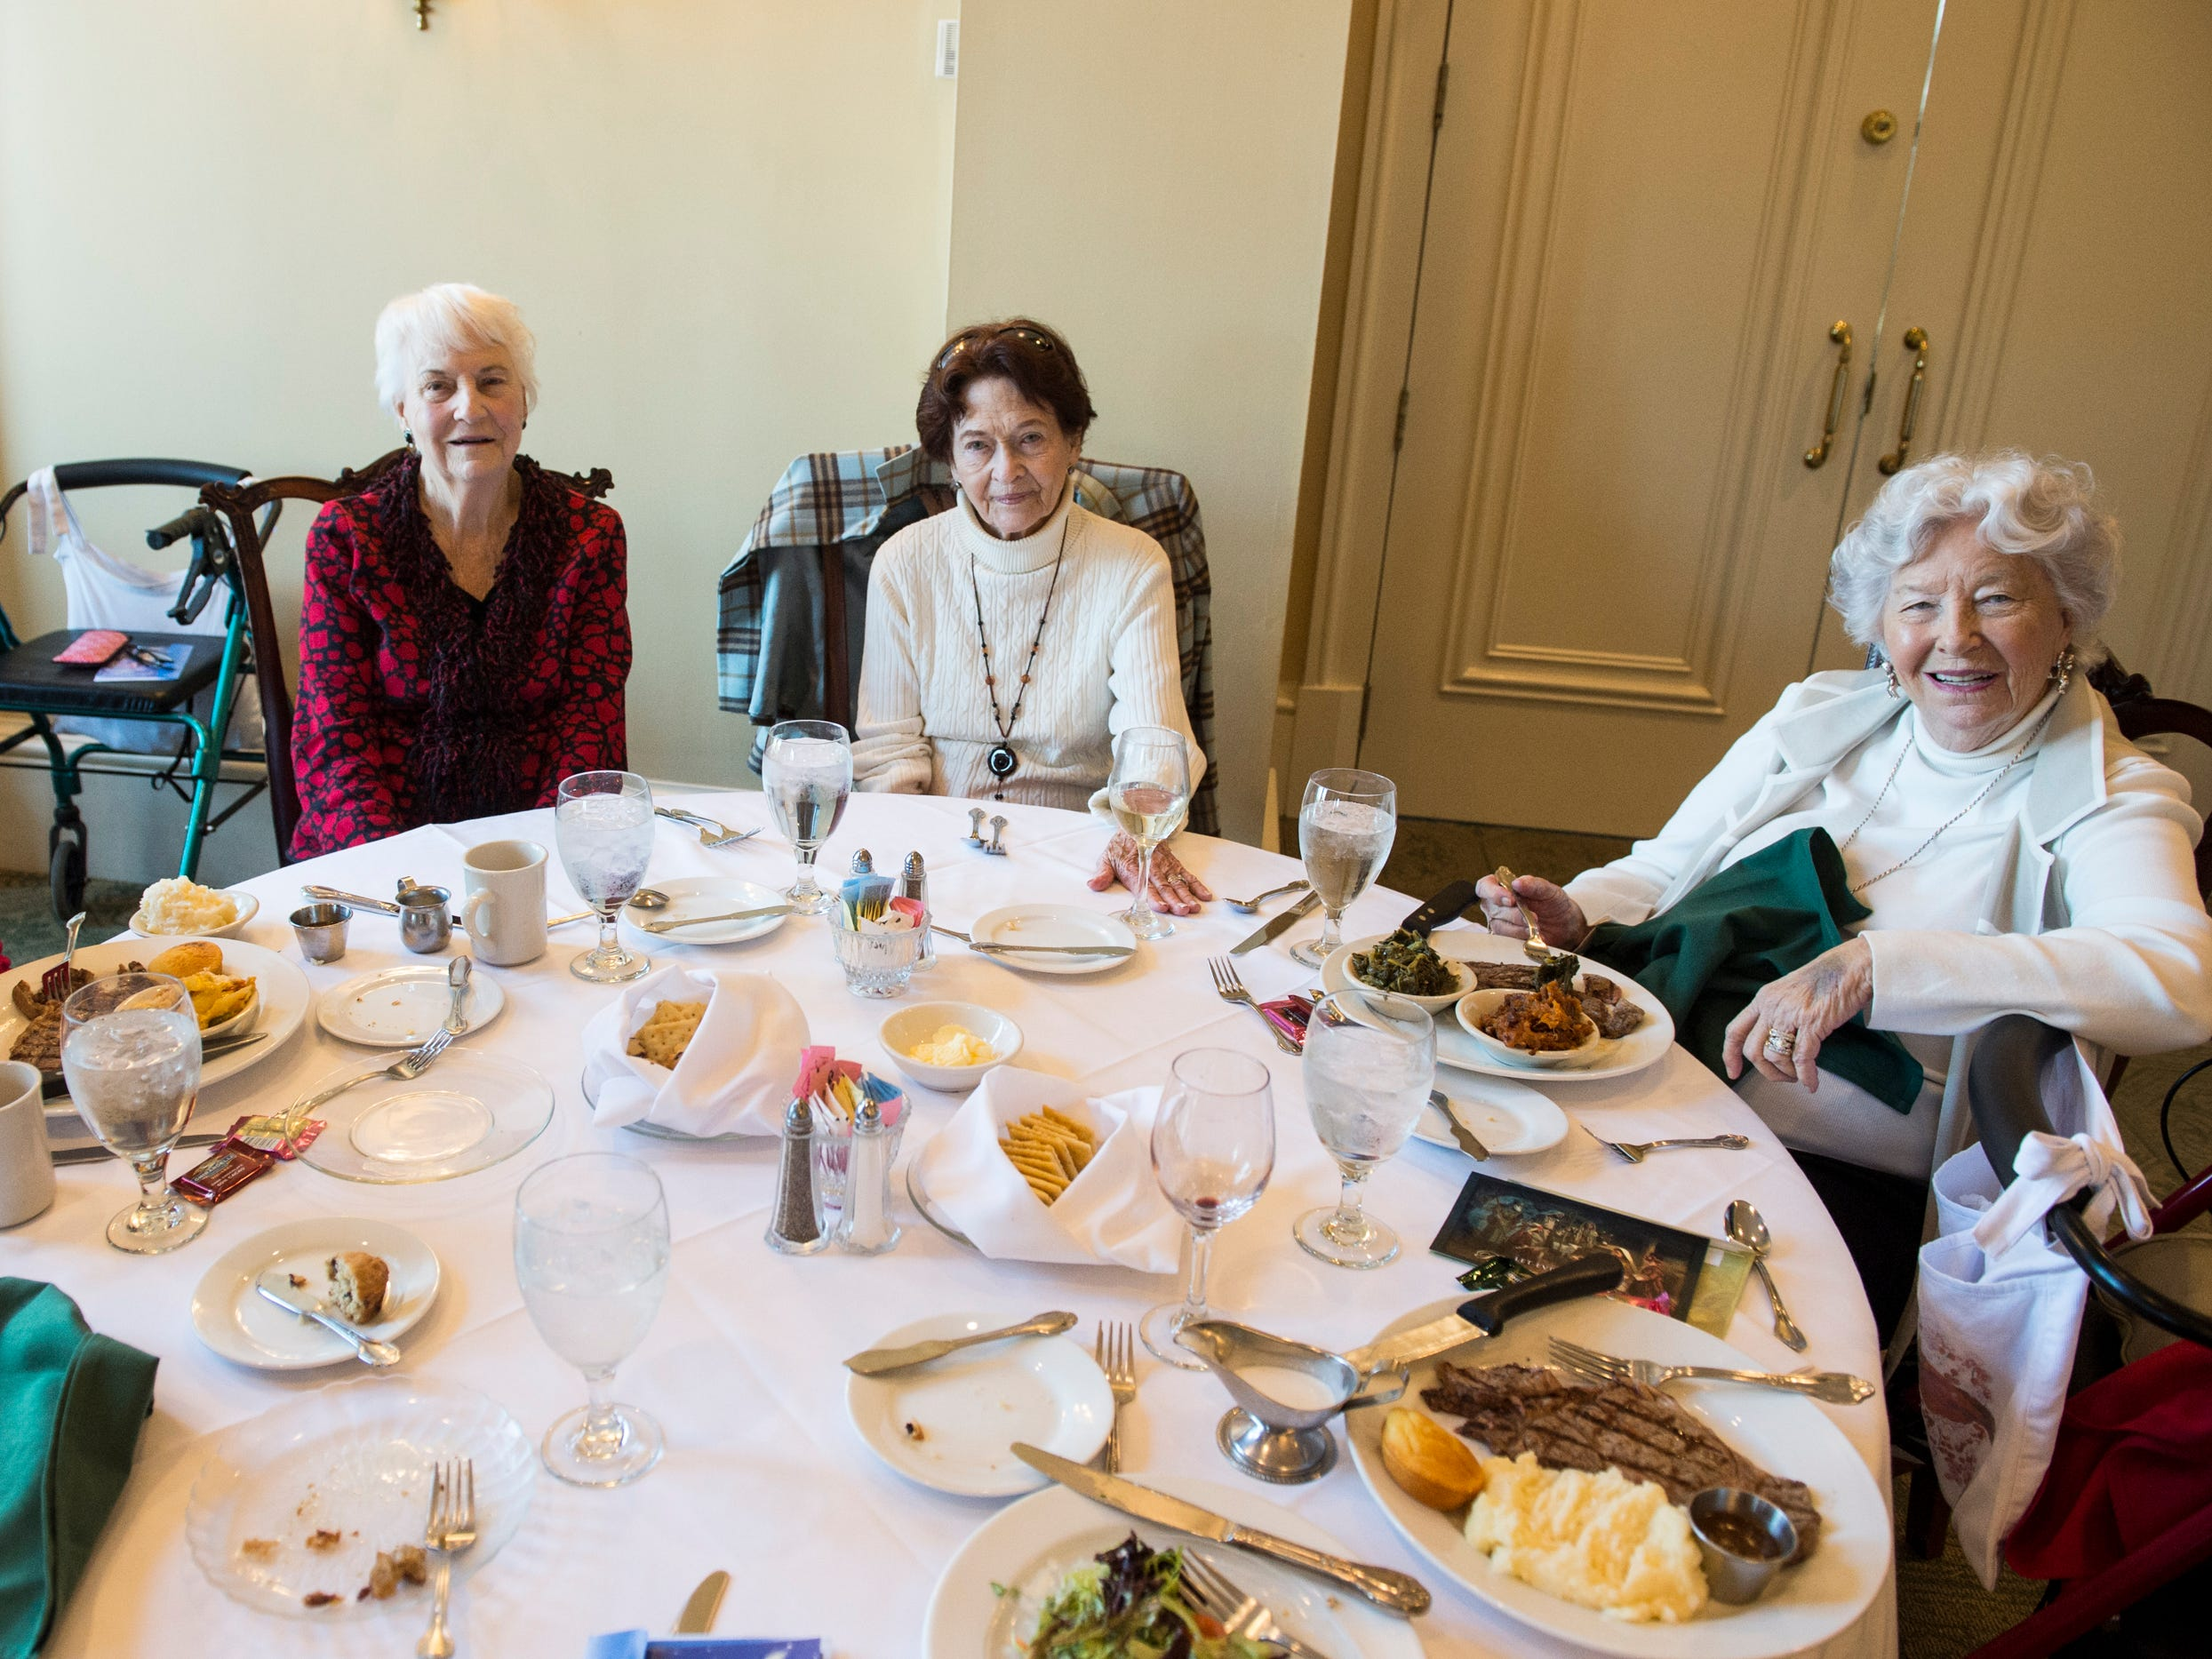 Alice Tyson, from left, Dot Hawthorne, Peggy Joseph and Maureen Parks pose for a picture during lunch at Montgomery Country Club in Montgomery, Ala., on Wednesday, Dec. 5, 2018.